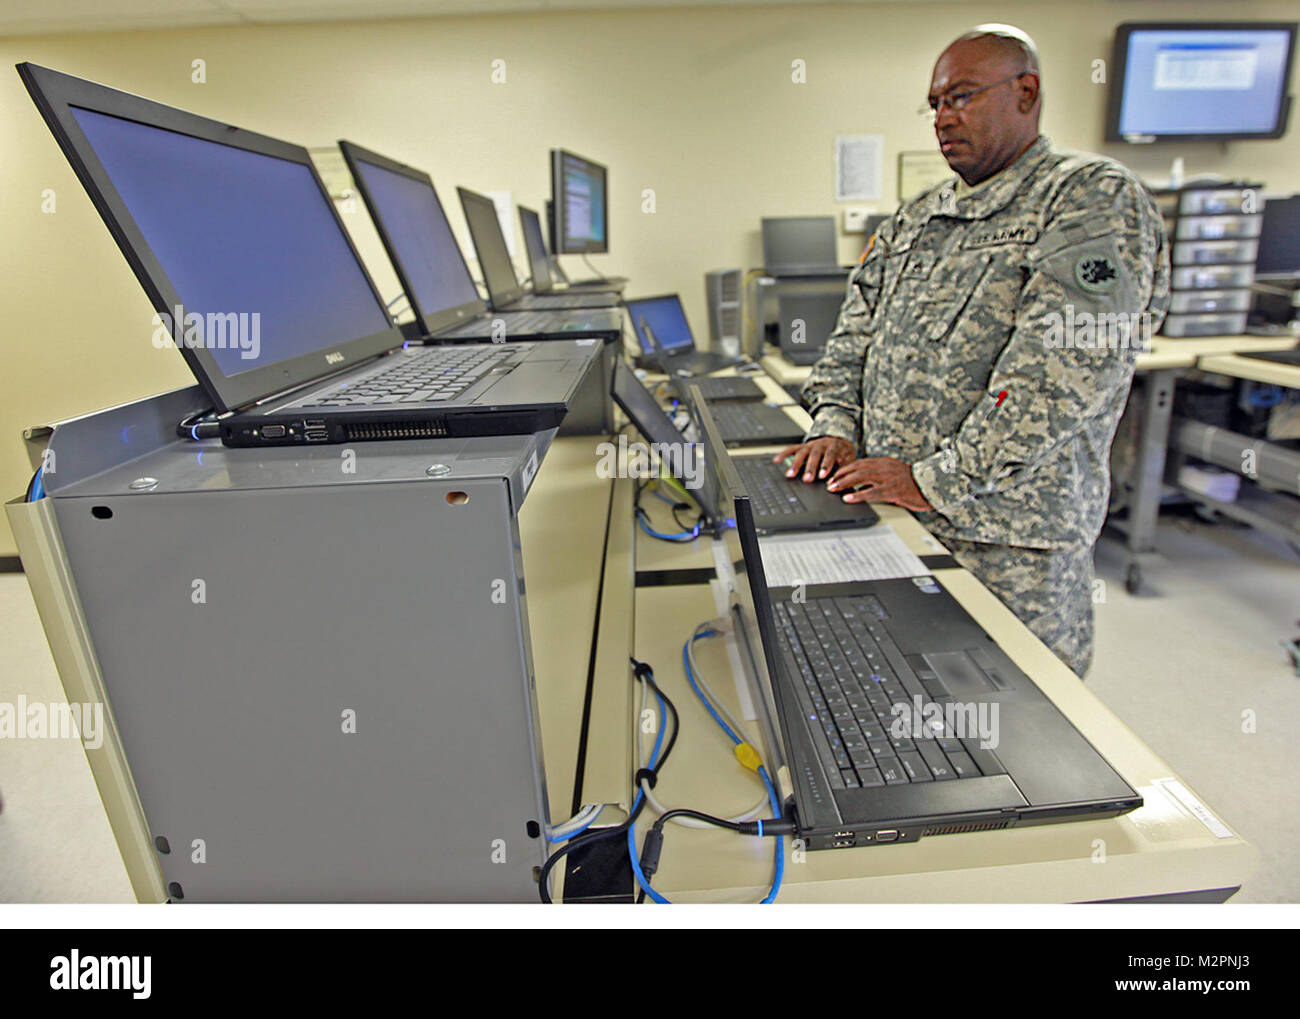 National Guard Computer Imaging Techniker durch Georgia National Guard Stockbild